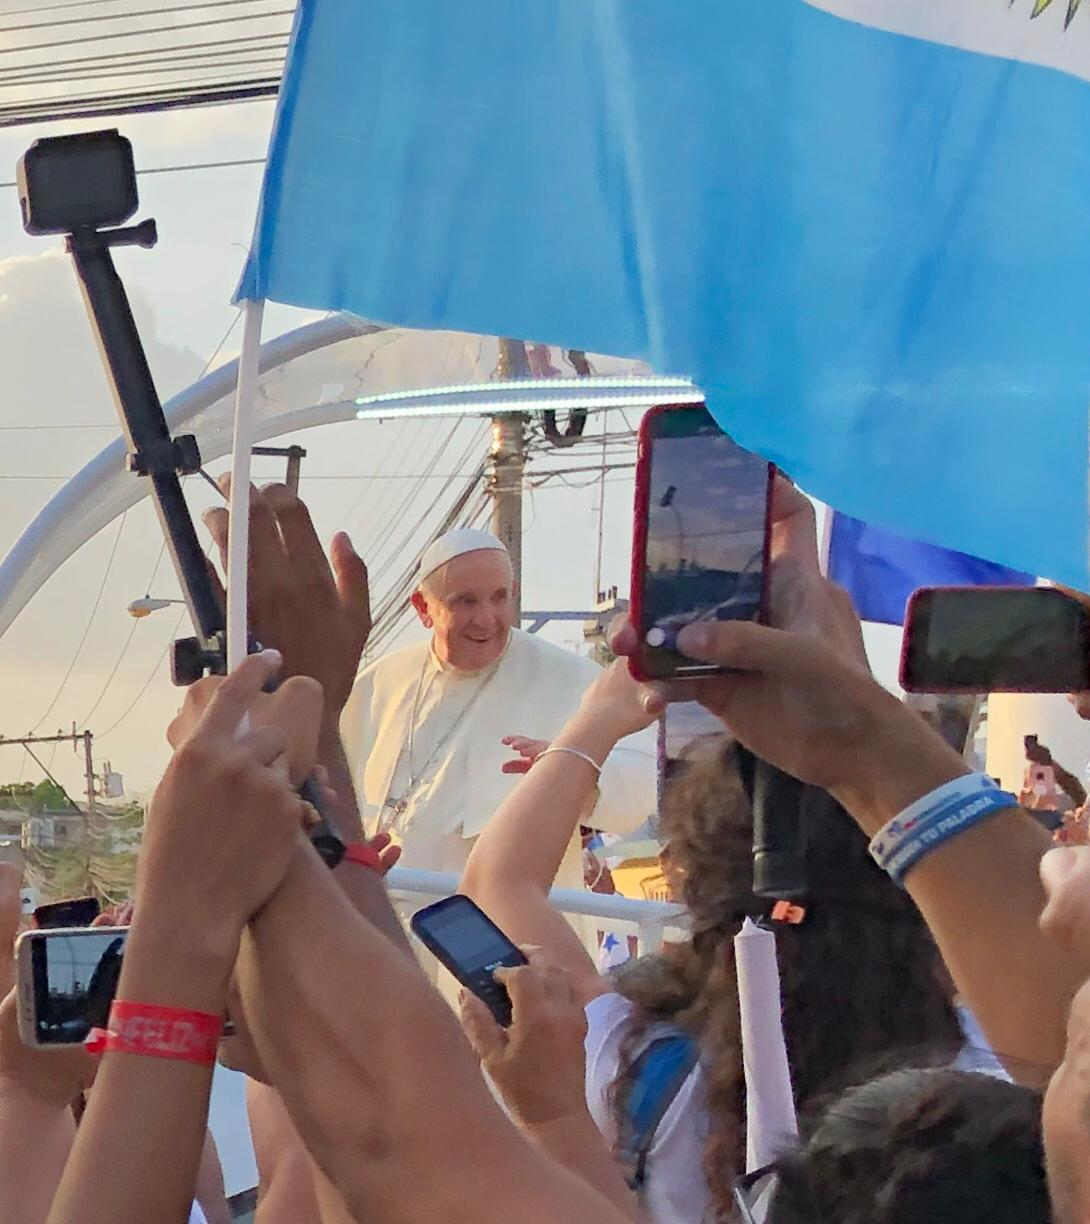 After only having to wait an hour, they were able to watch Pope Francis pass in Panama City.